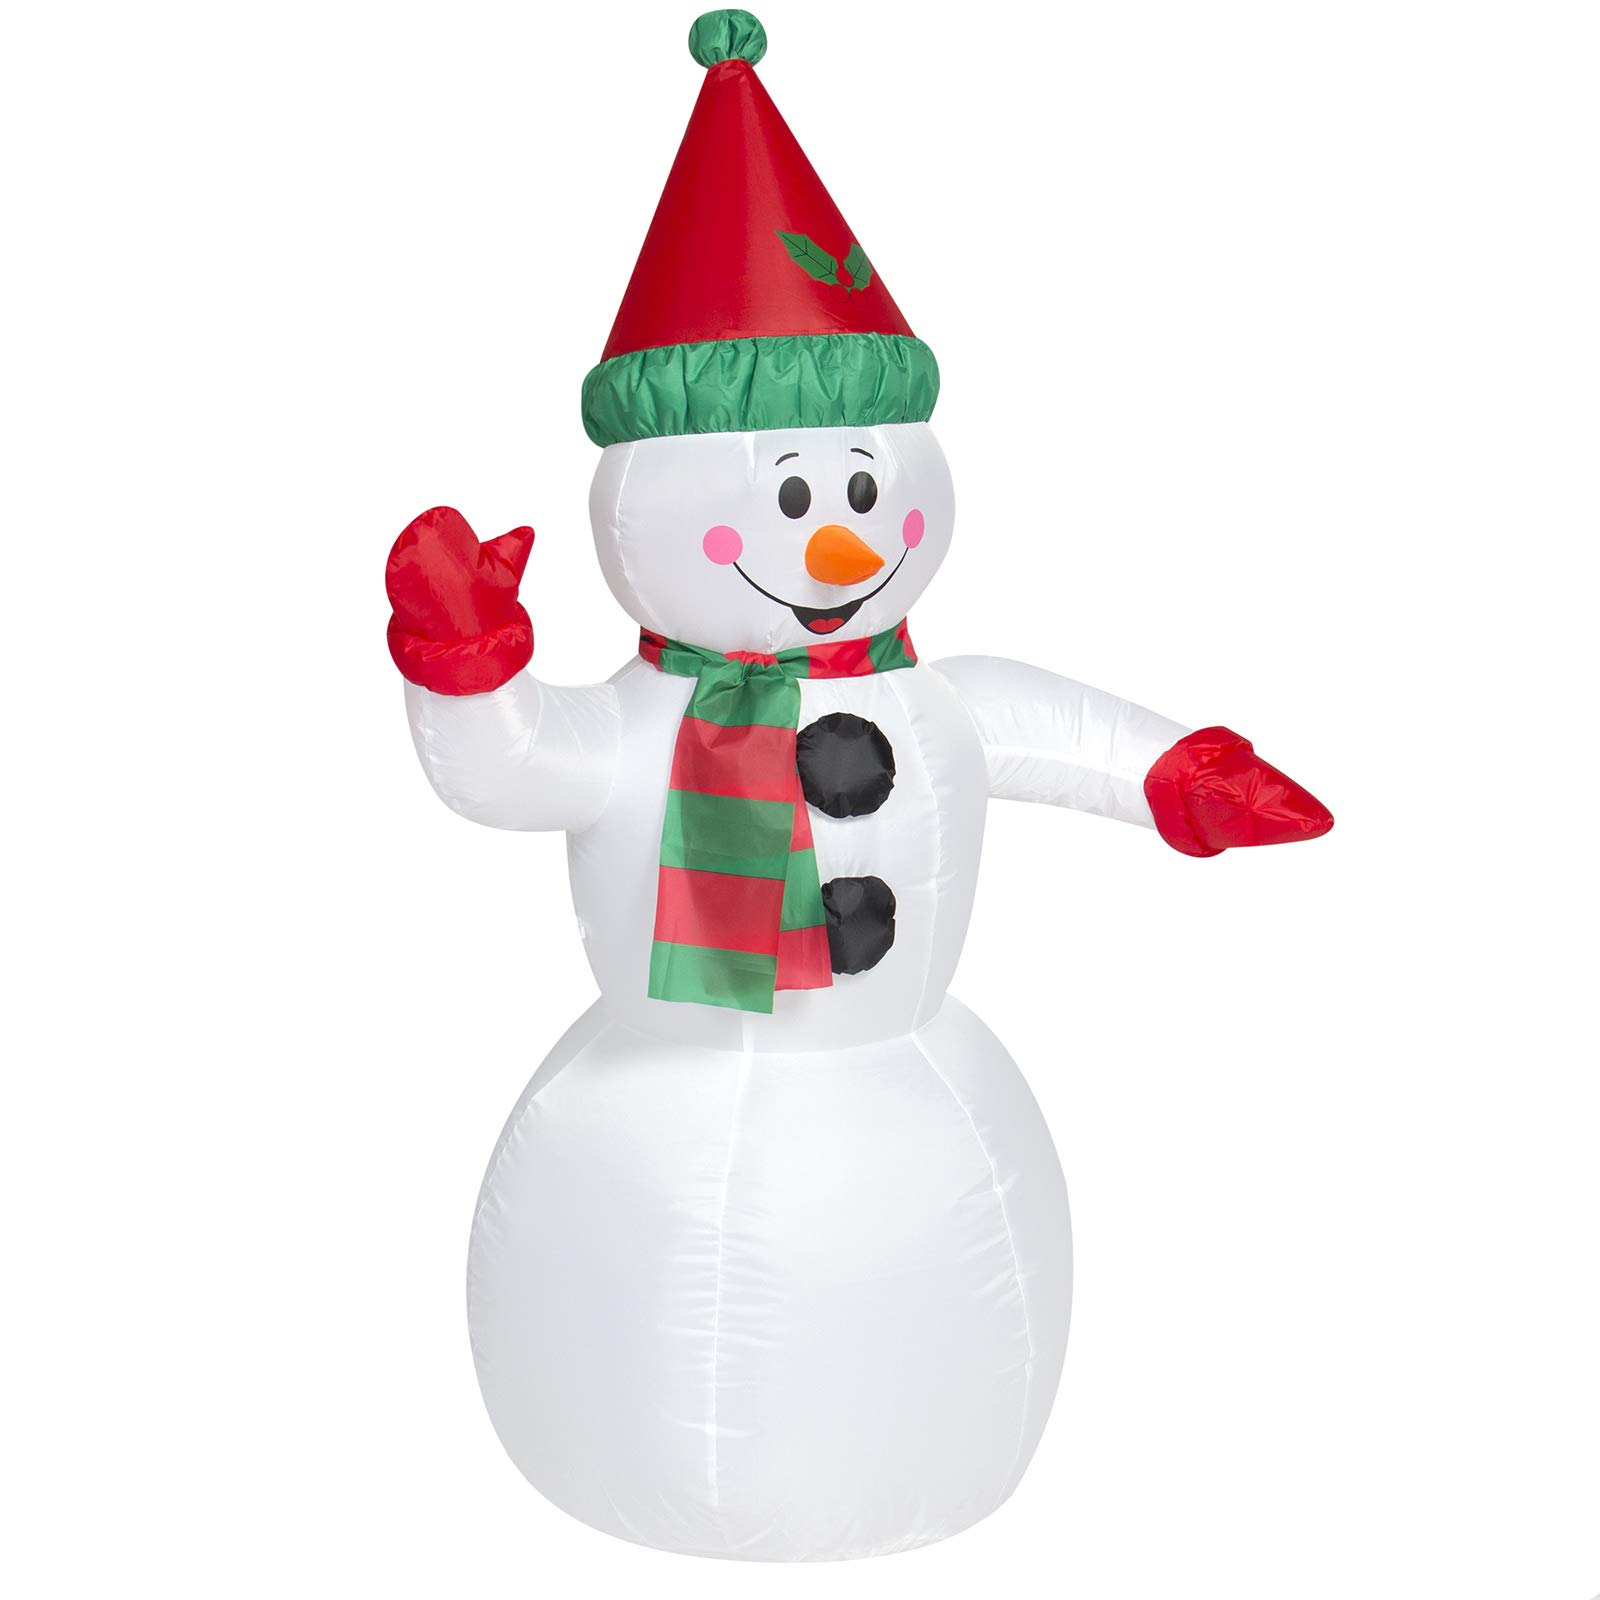 Best Choice Products 4ft Pre-Lit Inflatable Snowman Christmas Decor w/UL-Listed Blower, Lights, Ground Stakes - White